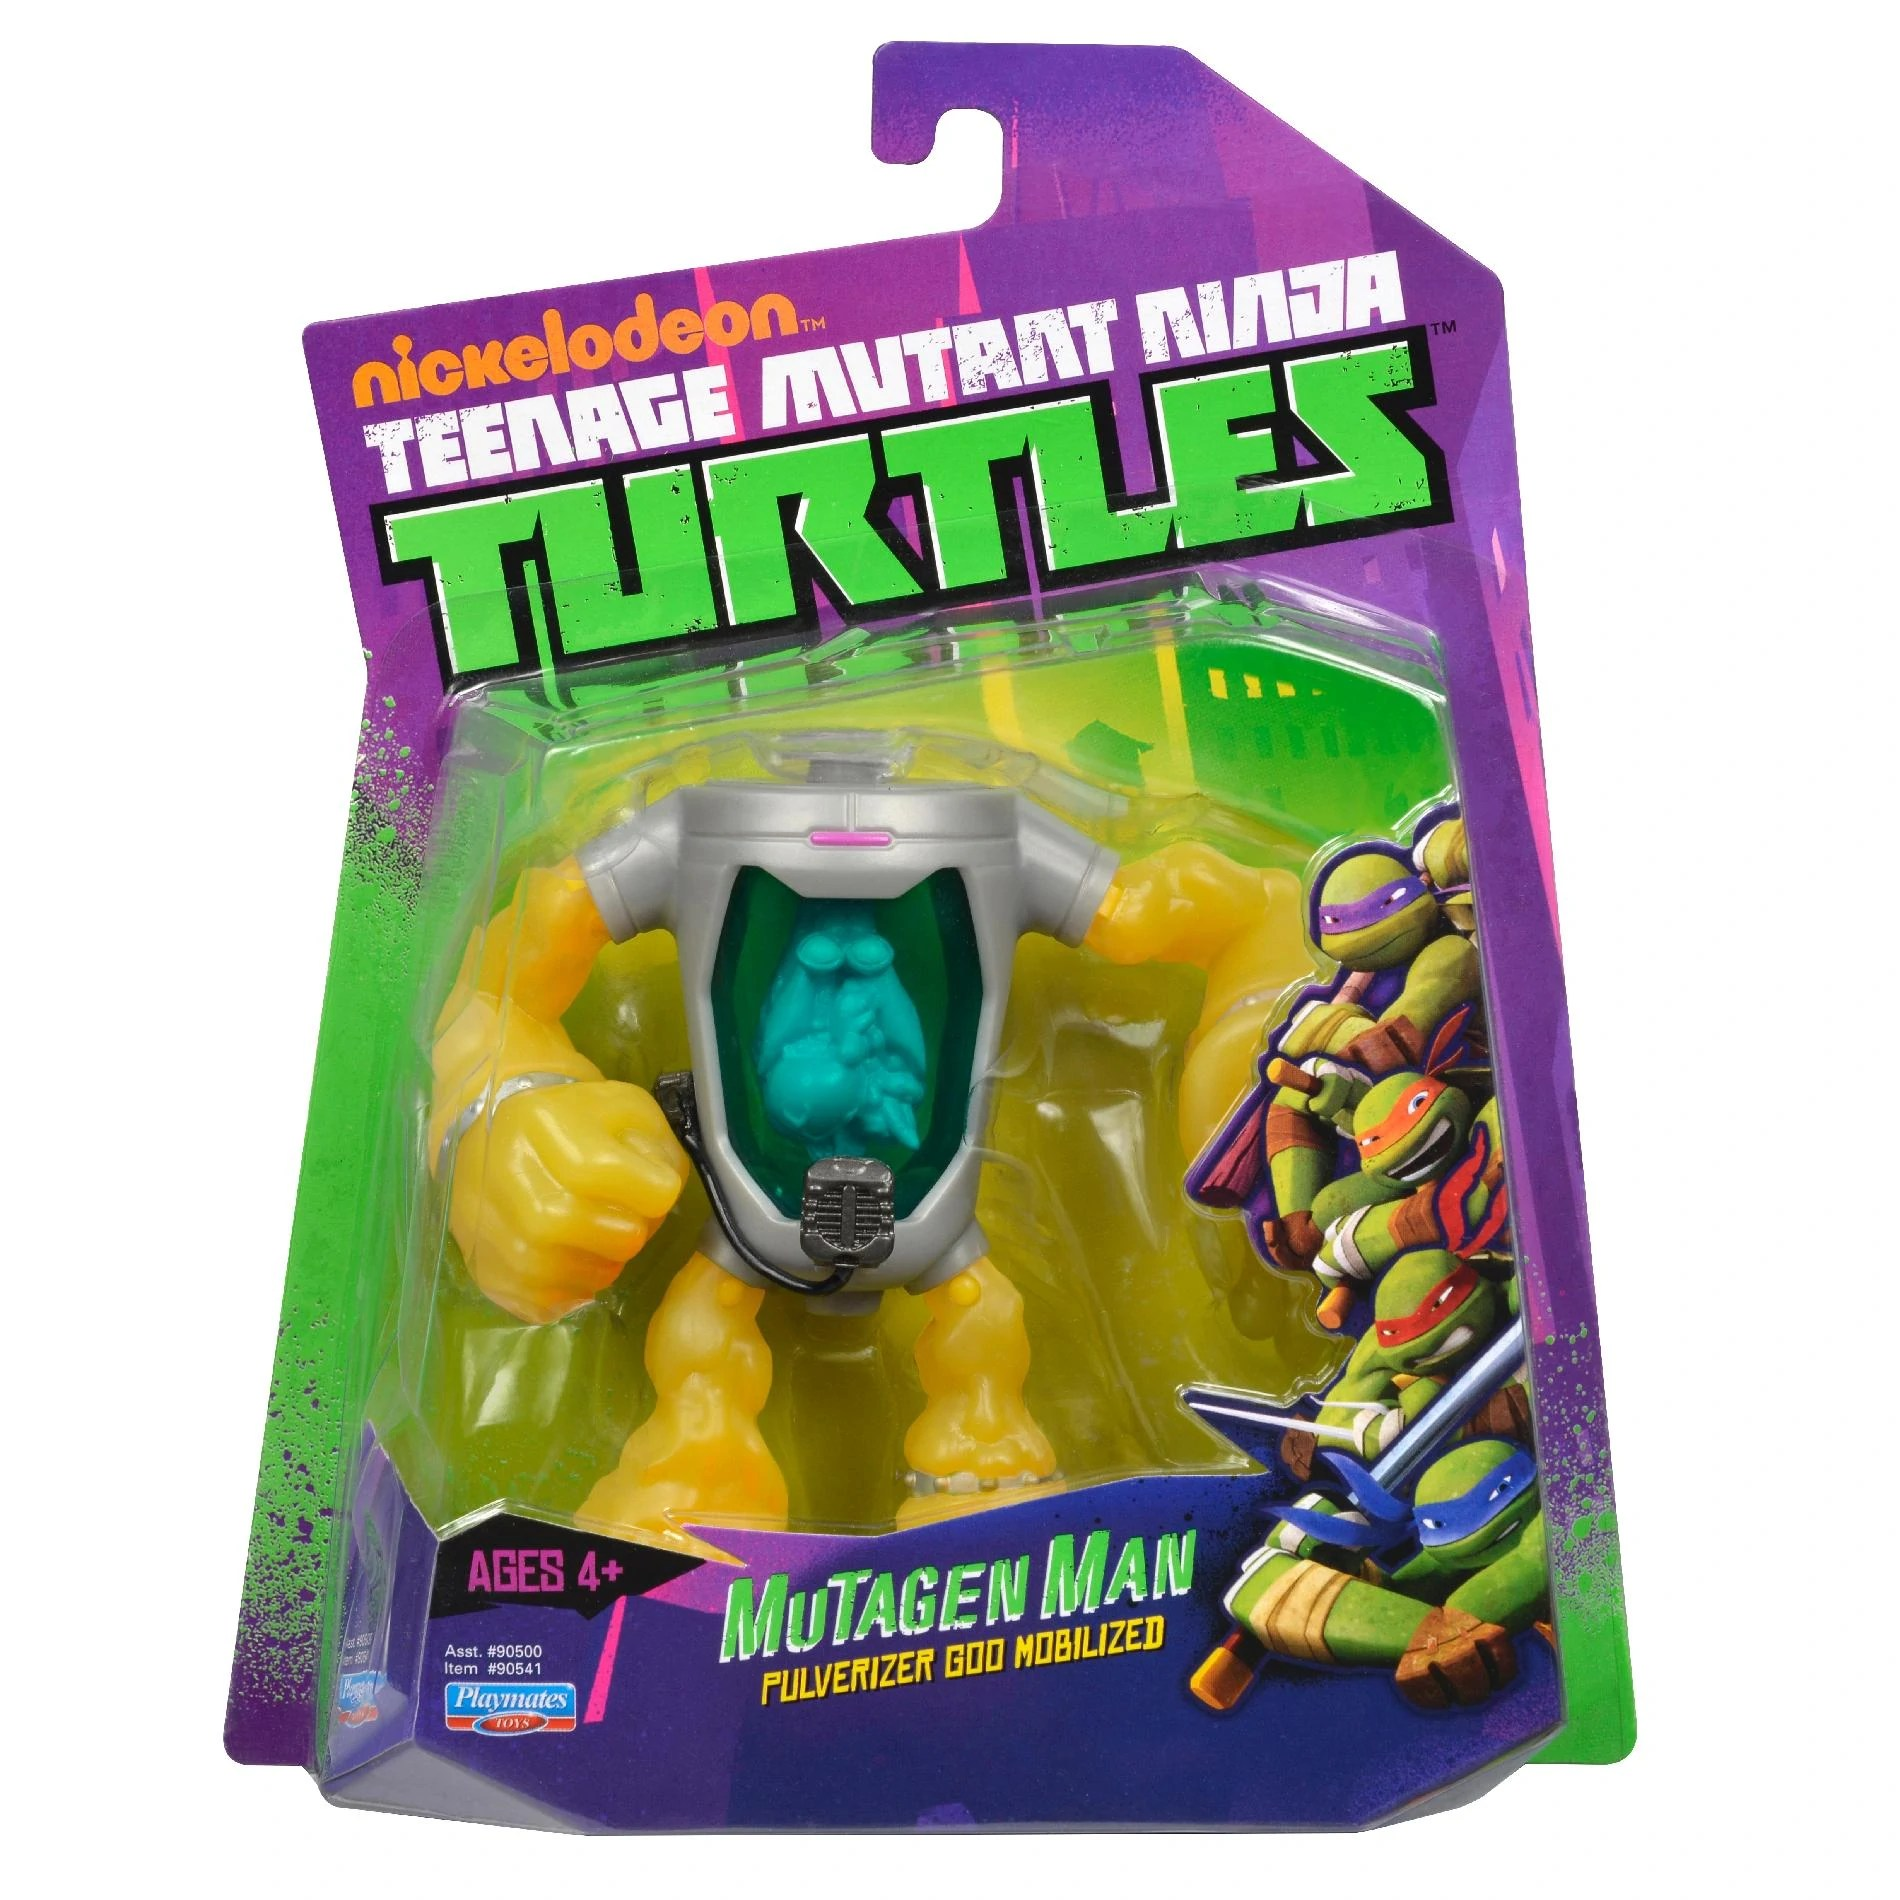 Spielzeug Tmnt Teenage Mutant Ninja Turtles Mutagen Man Action Figure Rare Triadecont Com Br